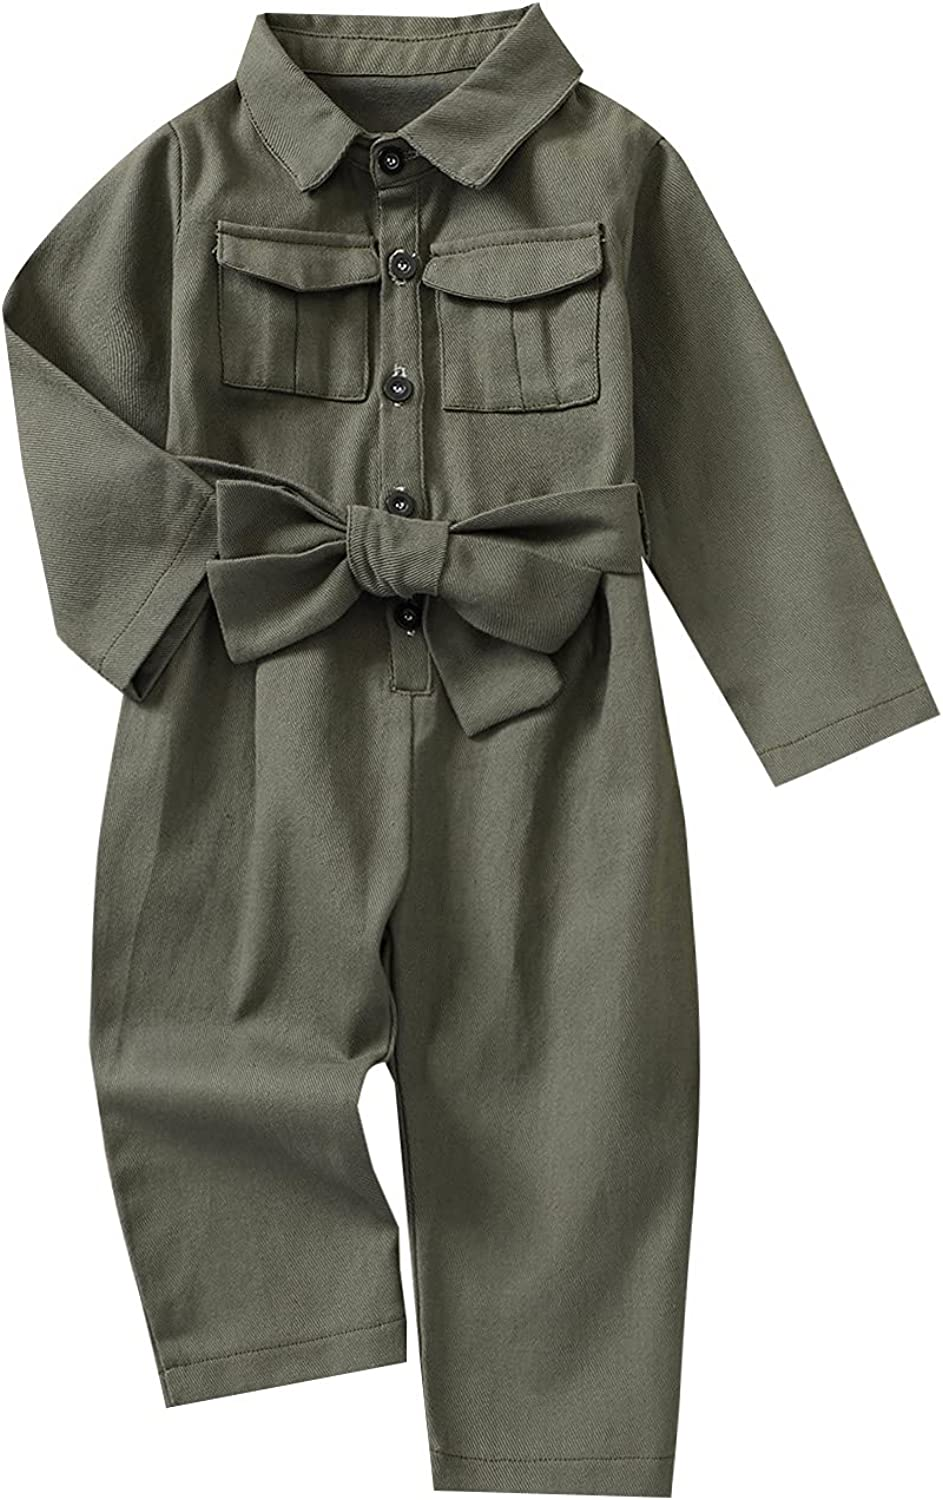 2Pcs Toddler Max 82% OFF At the price Girls Casual Clothes Solid Set Army Green Turn-Down